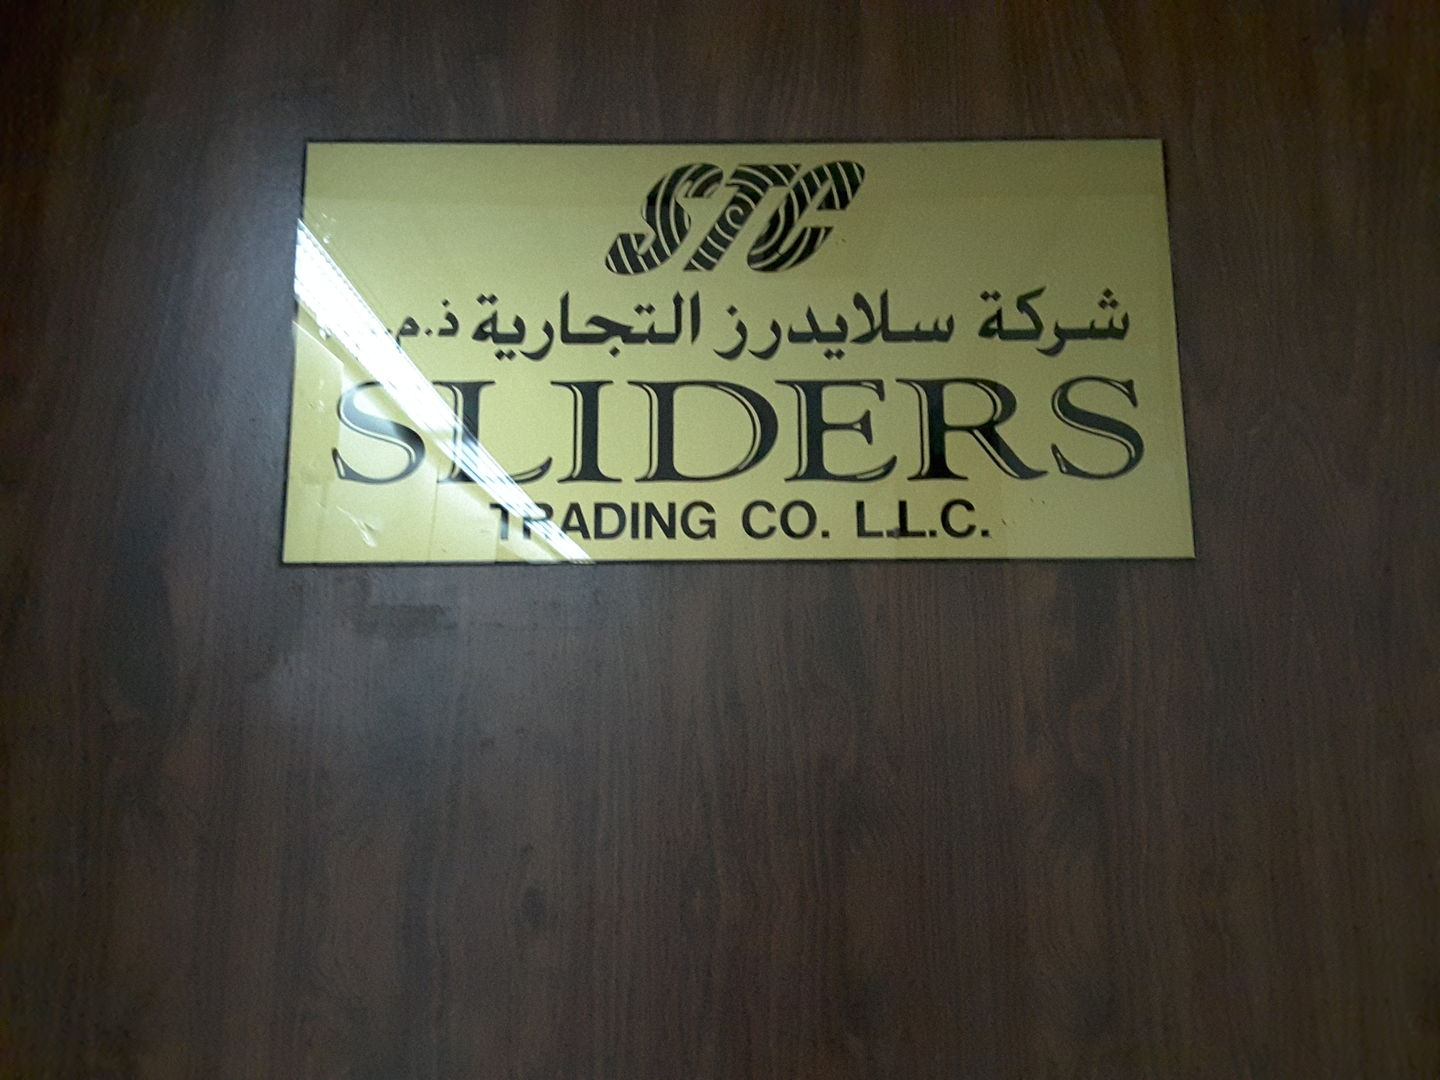 HiDubai-business-sliders-trading-co-b2b-services-distributors-wholesalers-corniche-deira-dubai-2